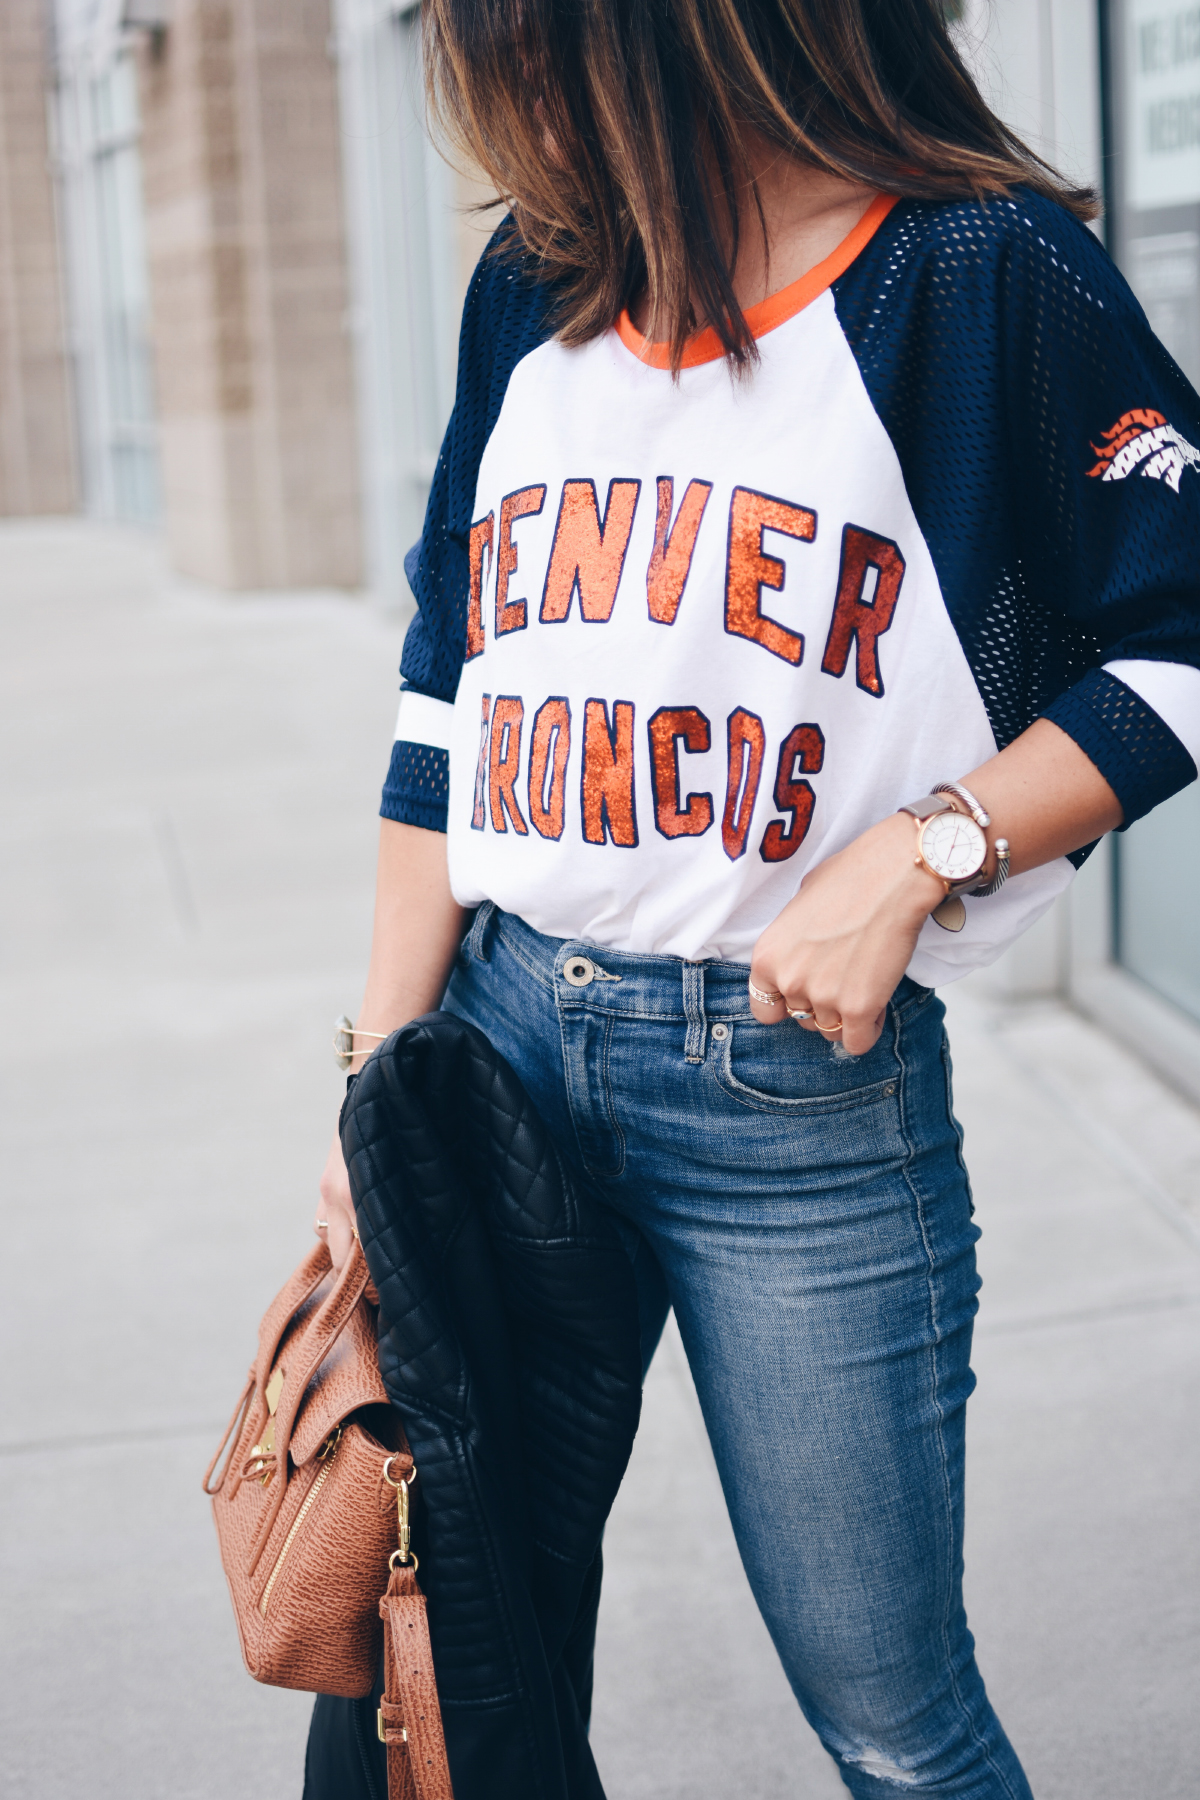 HOW TO STYLE YOUR DENVER BRONCOS GEAR